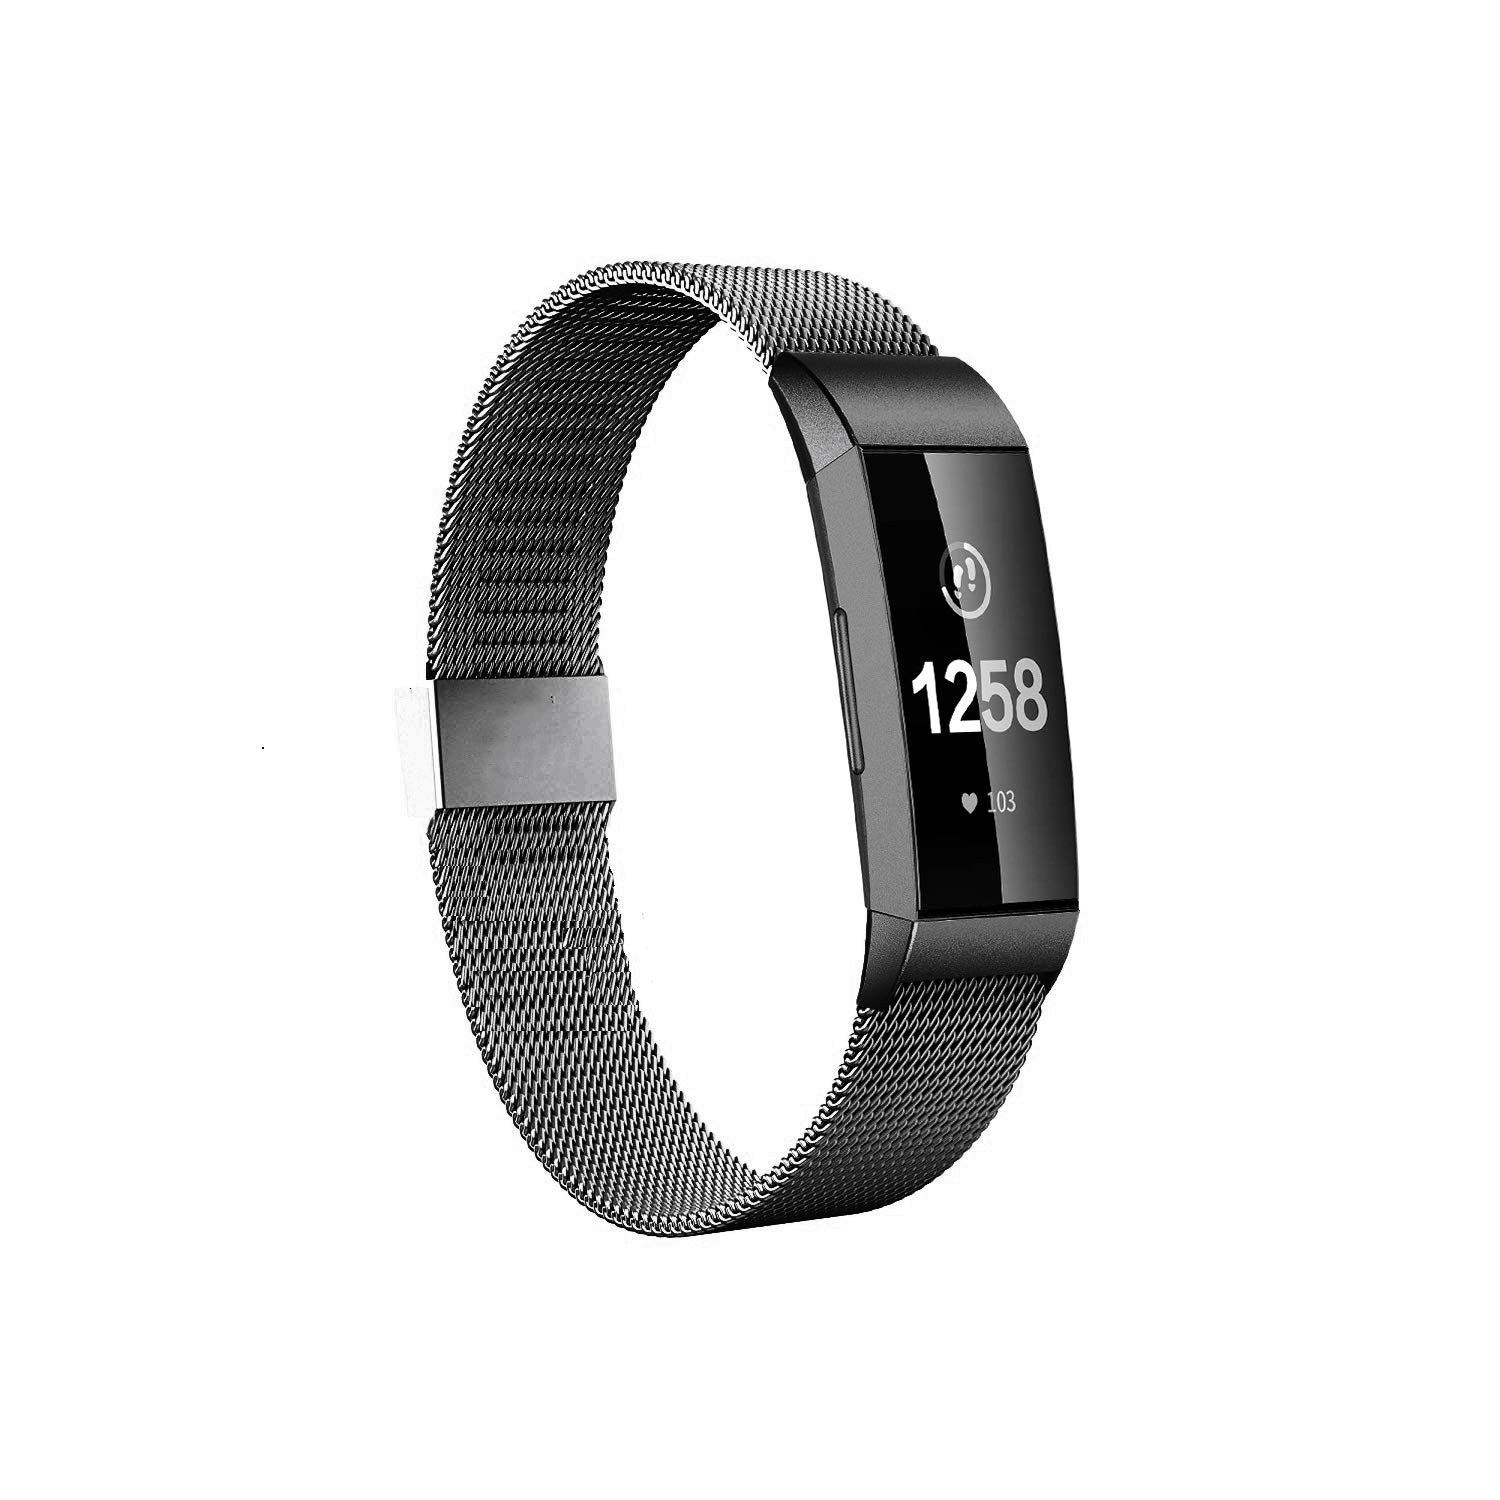 Fitlink Stainless Steel Bands Replacement for Charge 3 and Charge 3 SE for Women Men,Multi Color Multi Size (Black, Small(5.5''-8.5''))